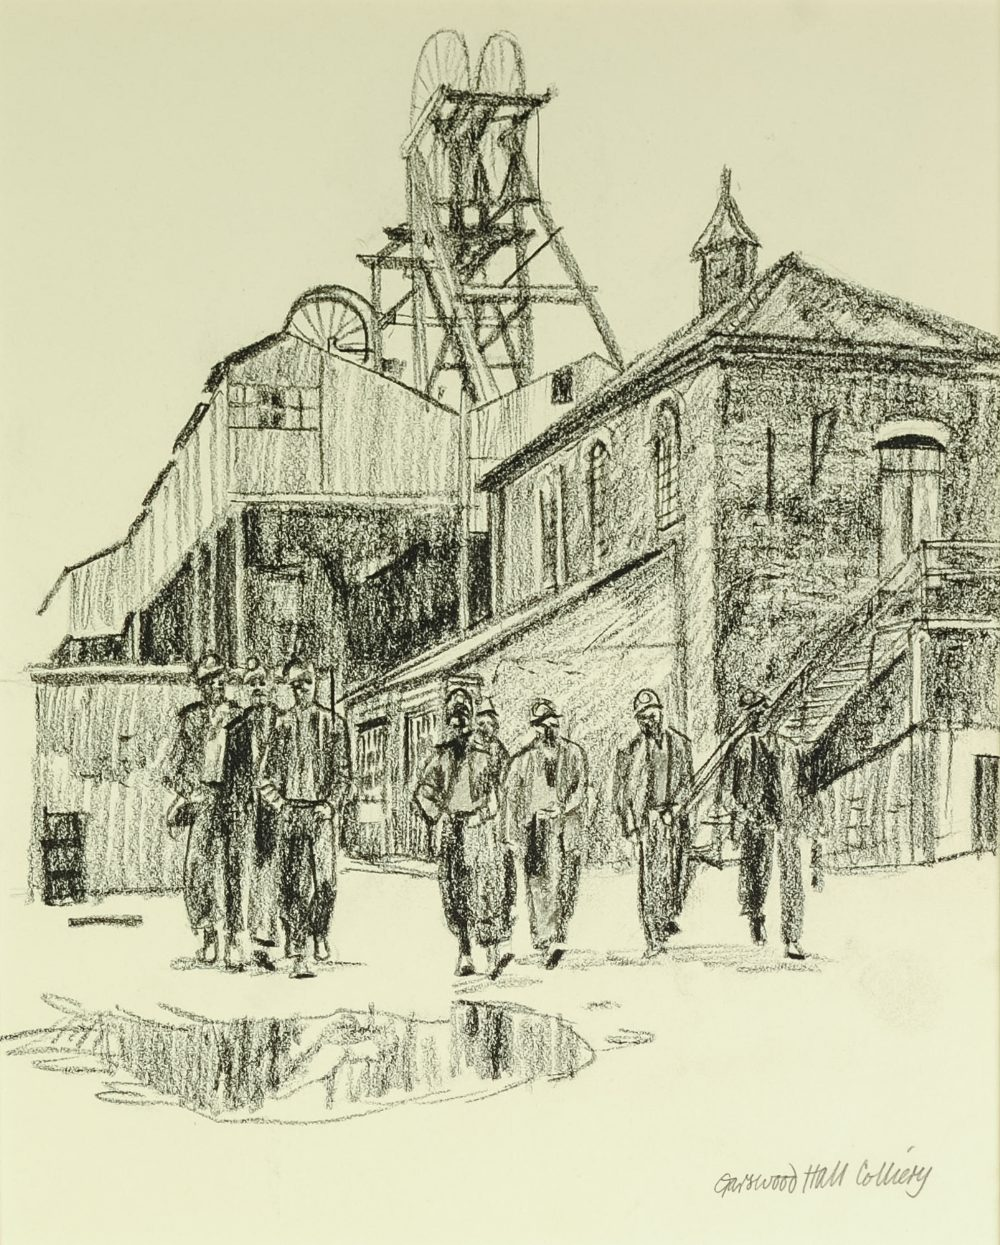 """Lot 67 - ROGER HAMPSON (1925-1996) PENCIL DRAWING 'Garswood Hall Colliery' 9 1/2"""" x 8"""" (24cm x 20.25cm) ("""